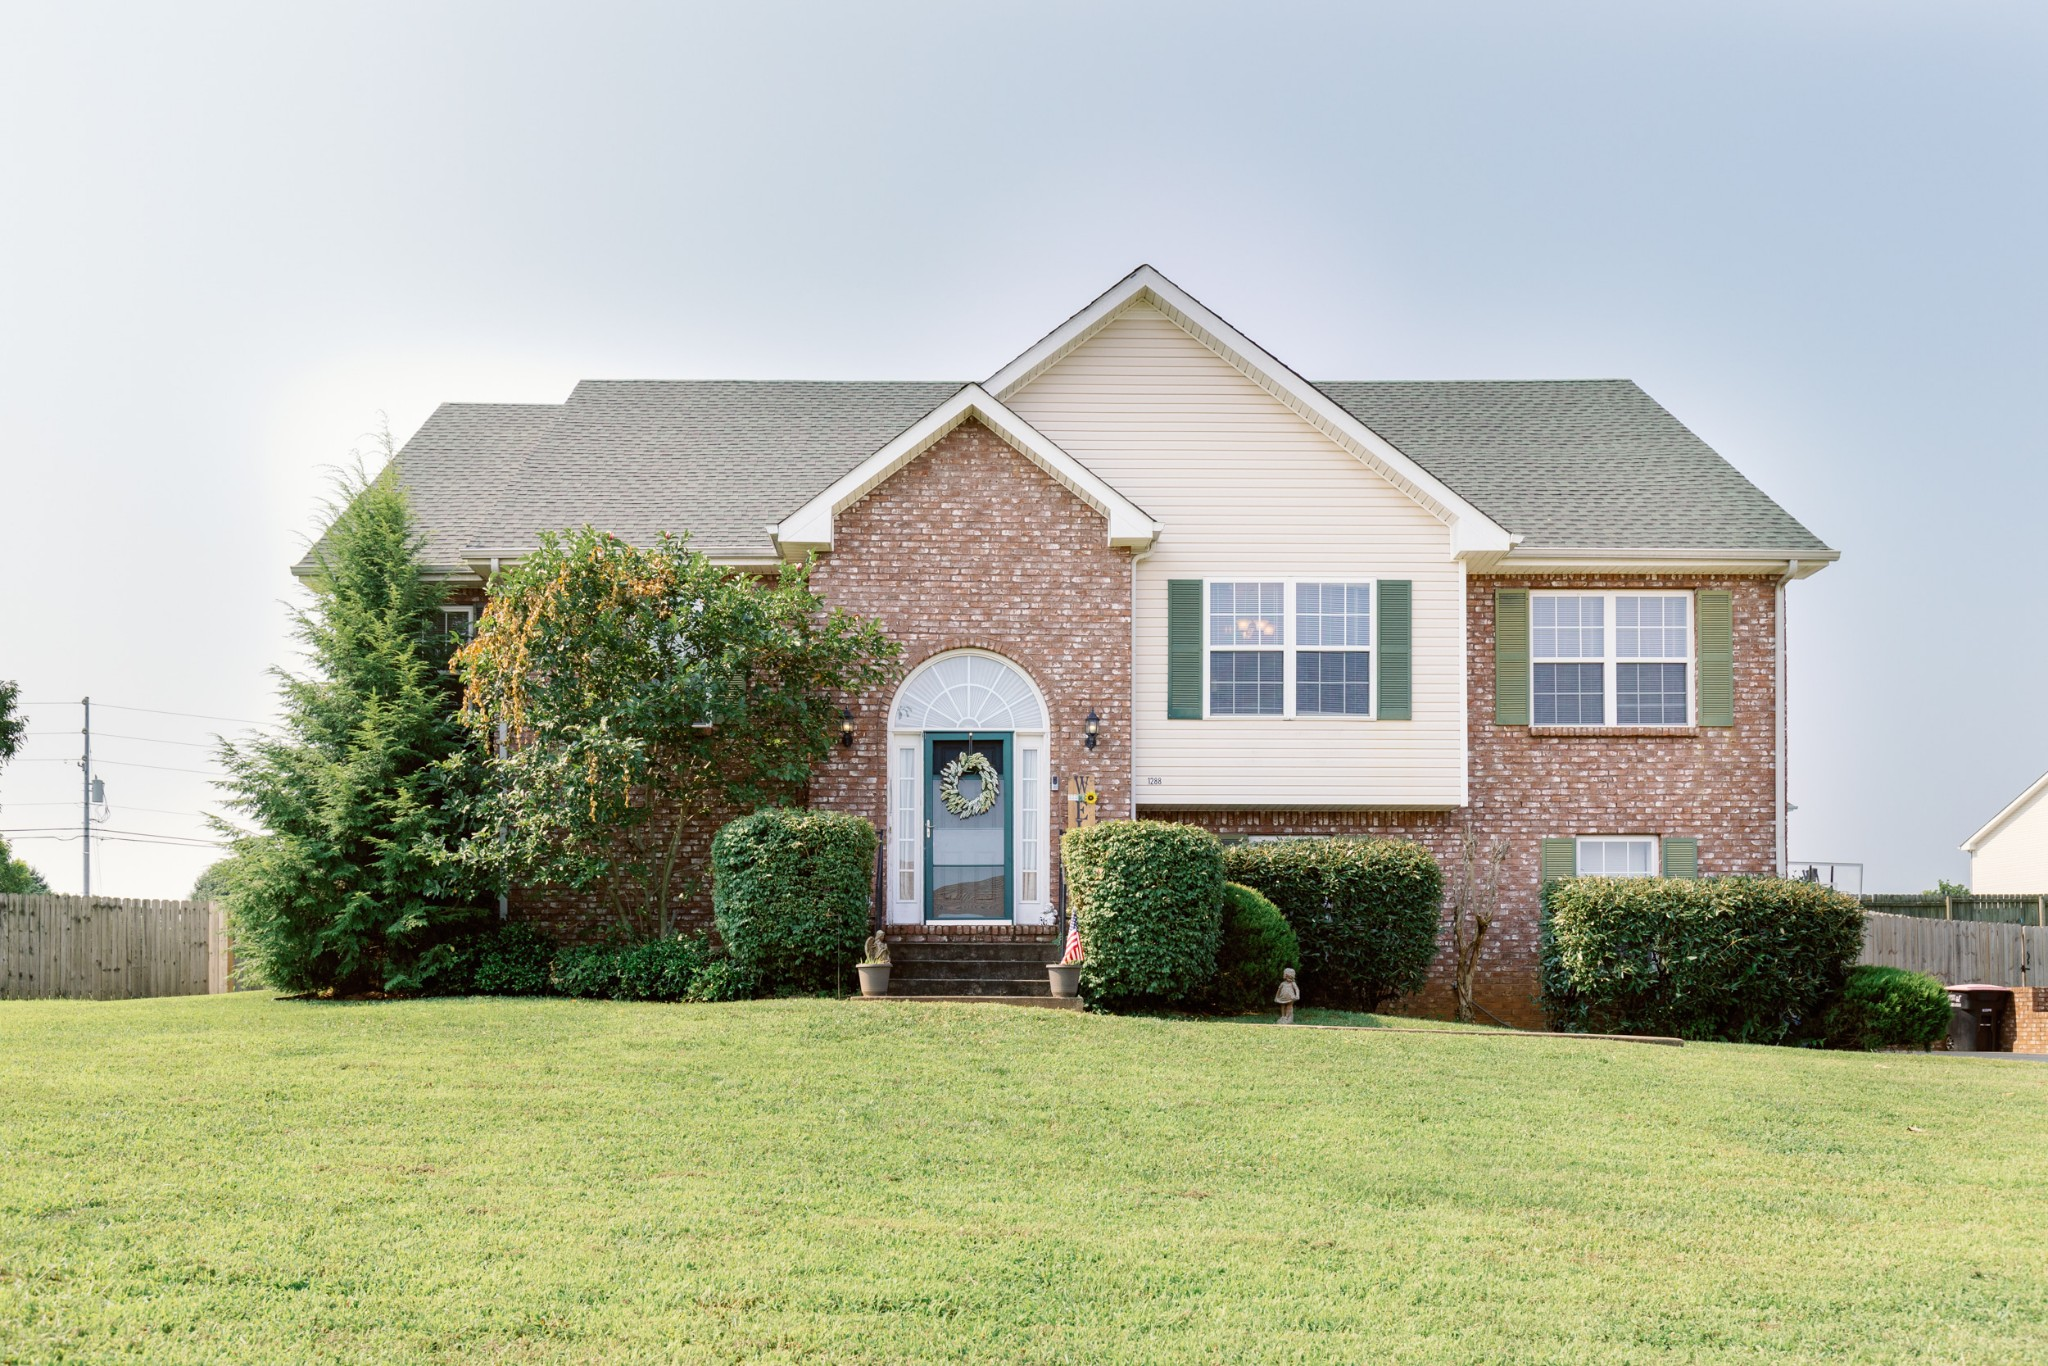 Welcome Home! This Amazing Cozy 5-bedroom home, 3-Car garage, Large fenced back yard. Close to Ft. Campbell and shopping. This home features a Newer Roof (2yrs.) Large Master Bedroom, Spacious Eat-in Kitchen, Fireplace, Dining area, beautiful wood floors in the Living room and hall ways. Downstairs is the Large Rec room, Large bedroom. Seller is offering a one year home warranty with First American. Call to schedule a tour today! This won't last long. MUST SEE!